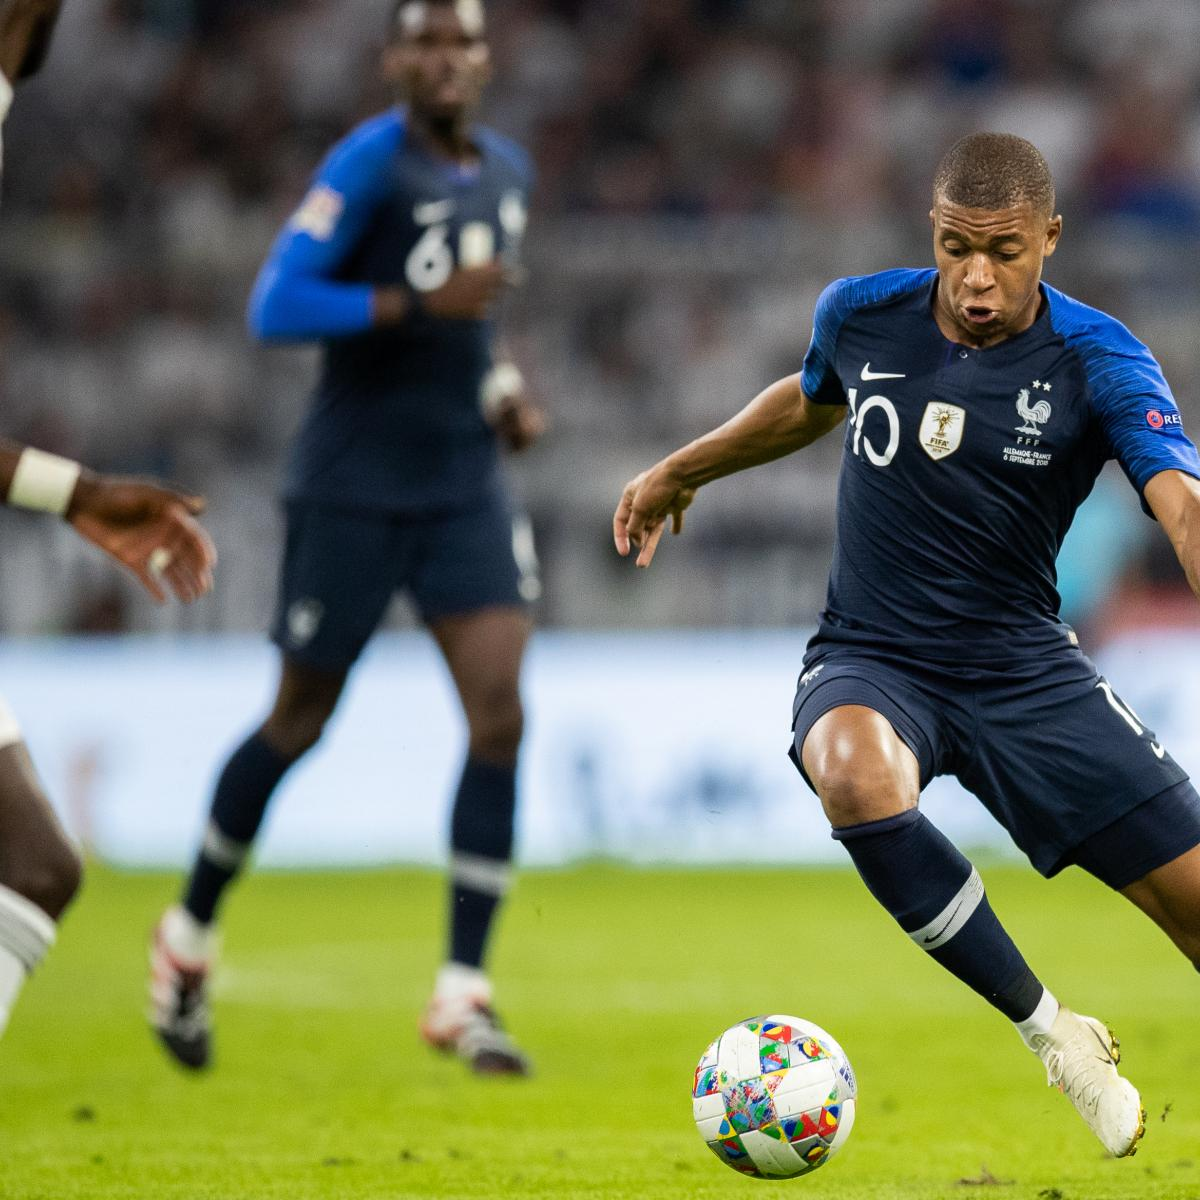 Kylian Mbappe Hoping for a PSG vs. Juventus Champions League Final